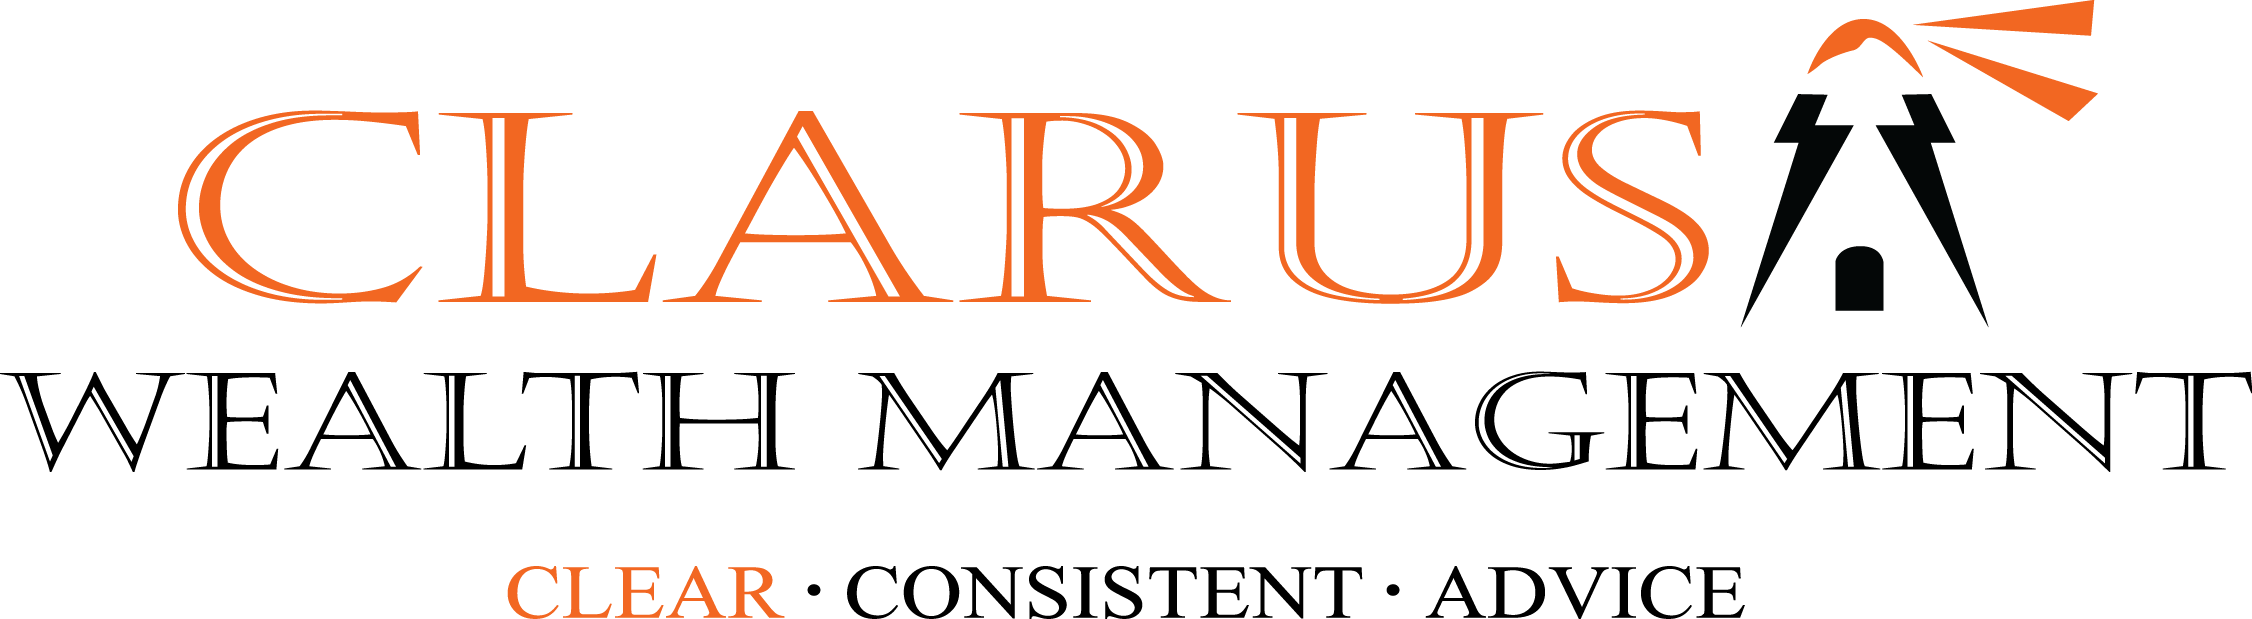 Clarus Wealth Mgmt Logo Transparent 300ppi